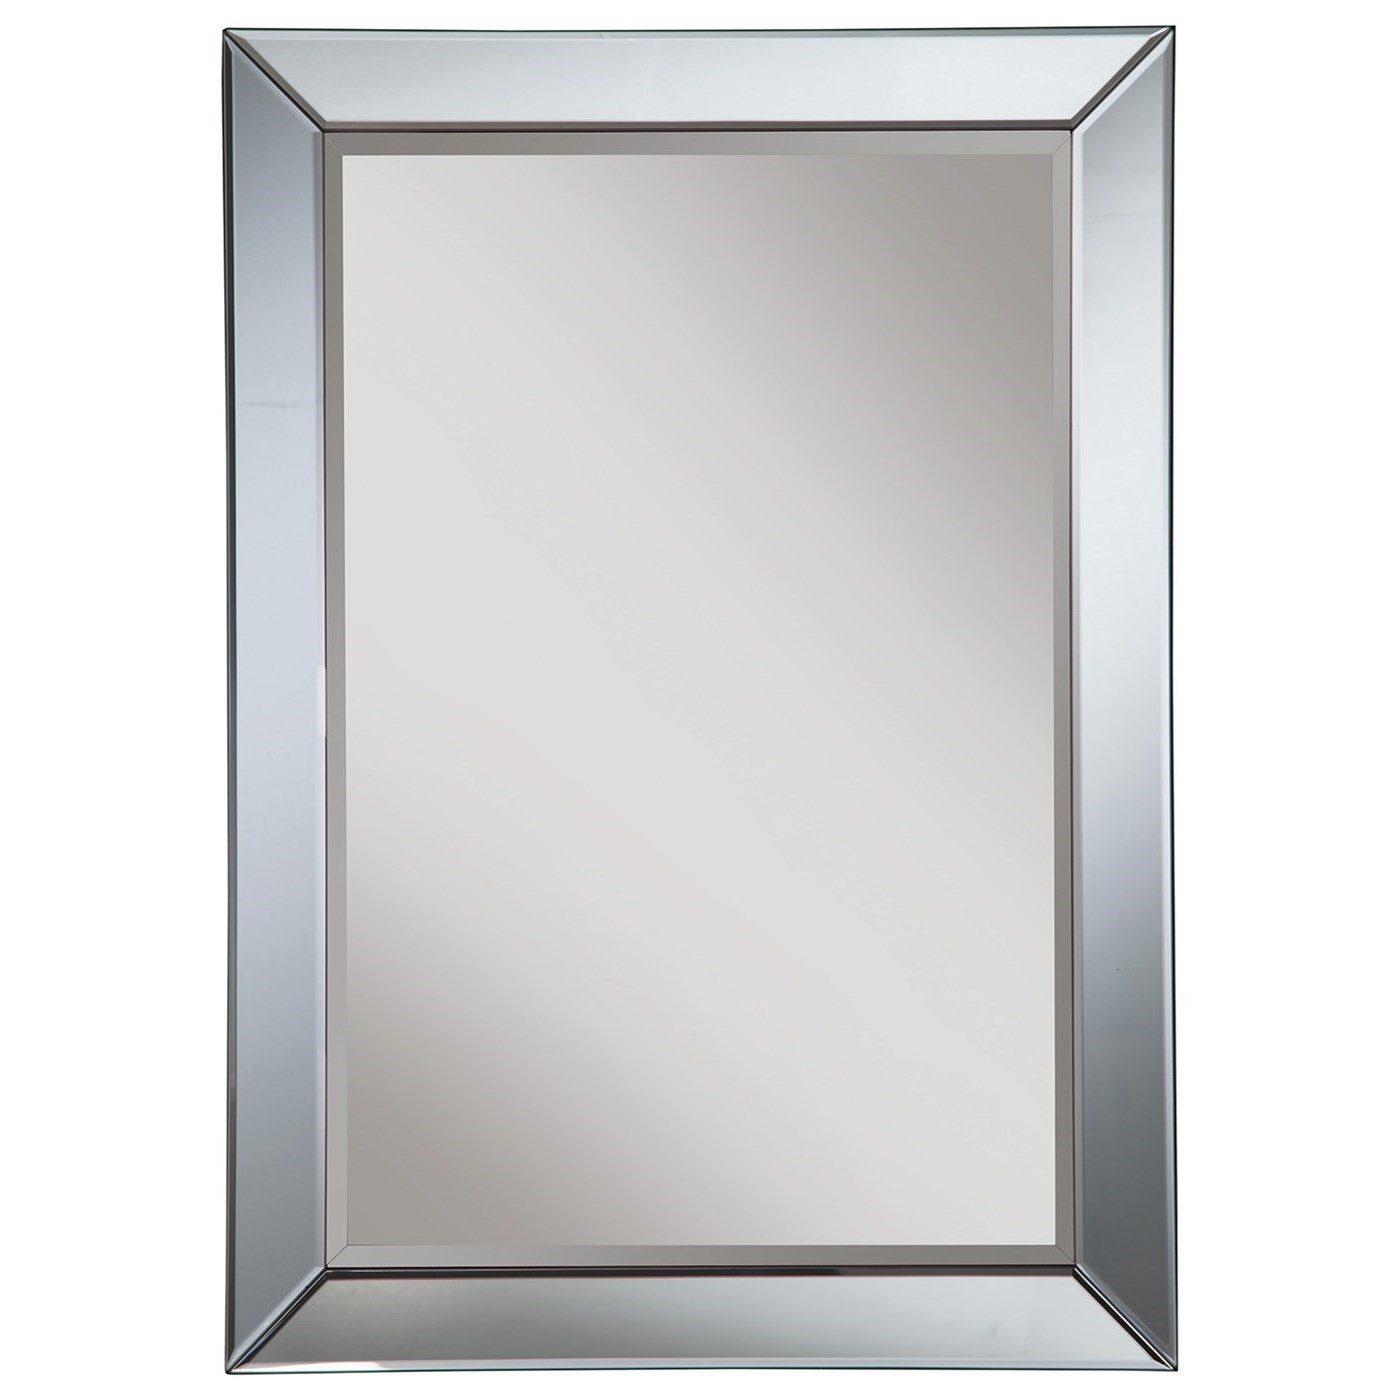 Coaster Accent Mirrors Mirror - Item Number: 960107